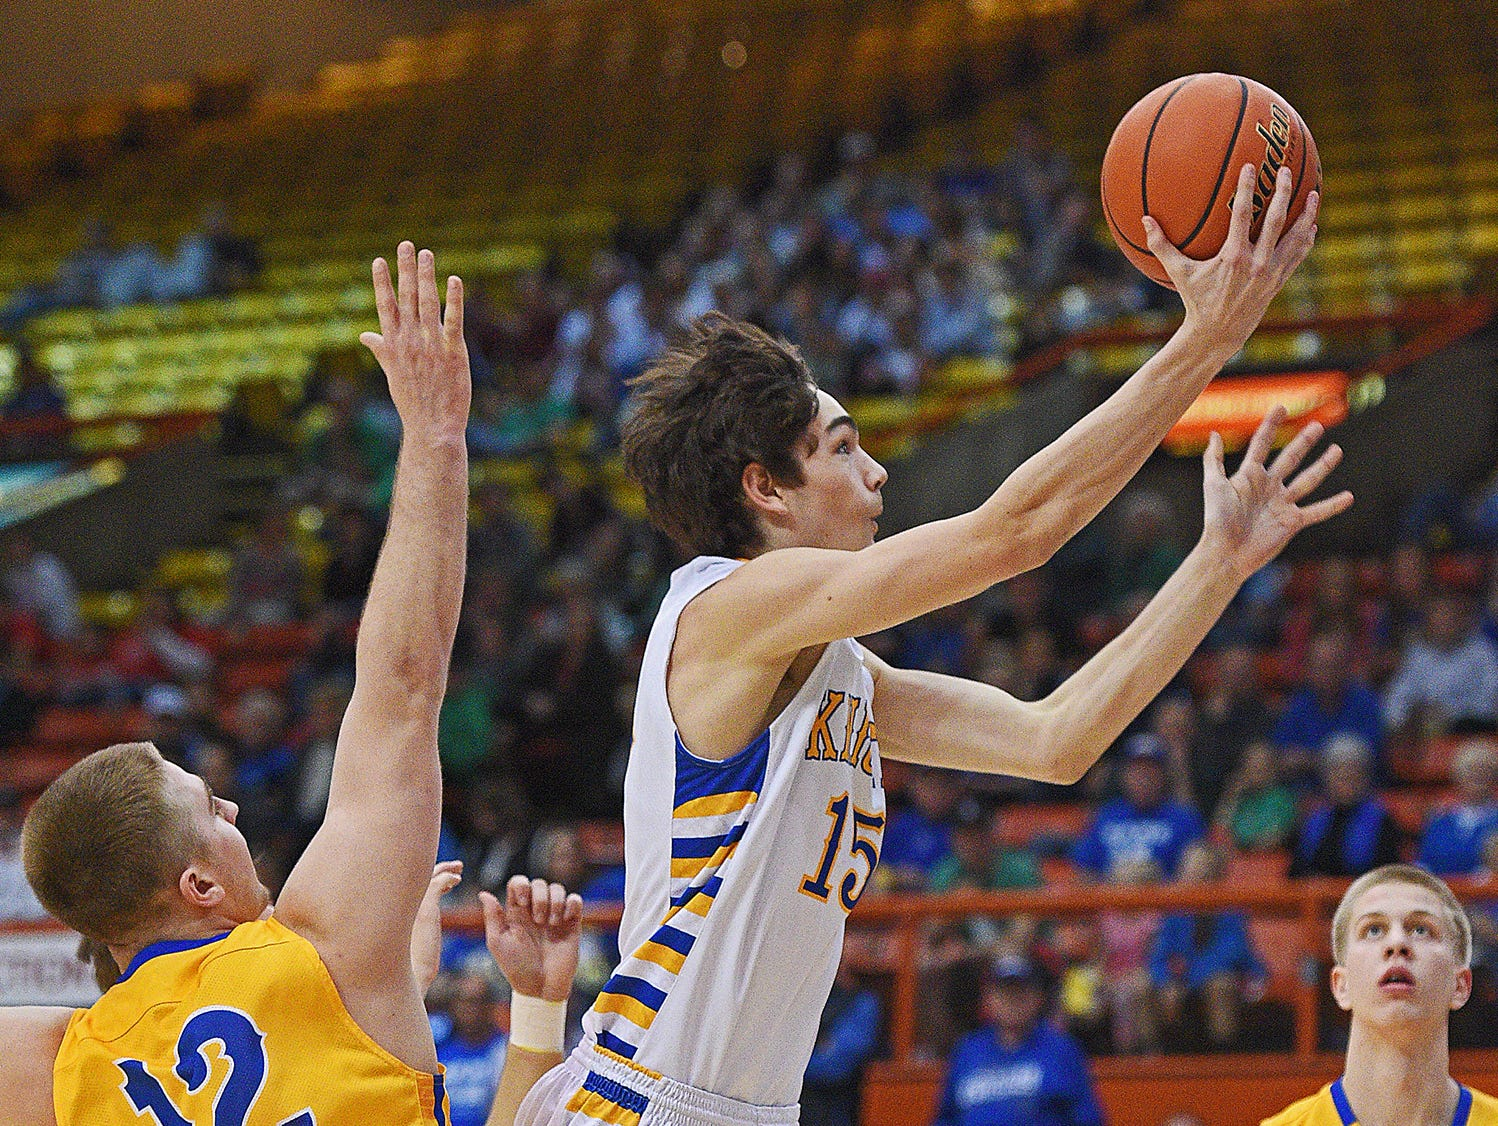 O'Gorman's Joey Messler (15) goes up for a shot over Aberdeen Central's Collin Stoebner (12) during the 2017 SDHSAA Class AA State Boys Basketball championship game Saturday, March 18, 2017, at Rushmore Plaza Civic Center in Rapid City.